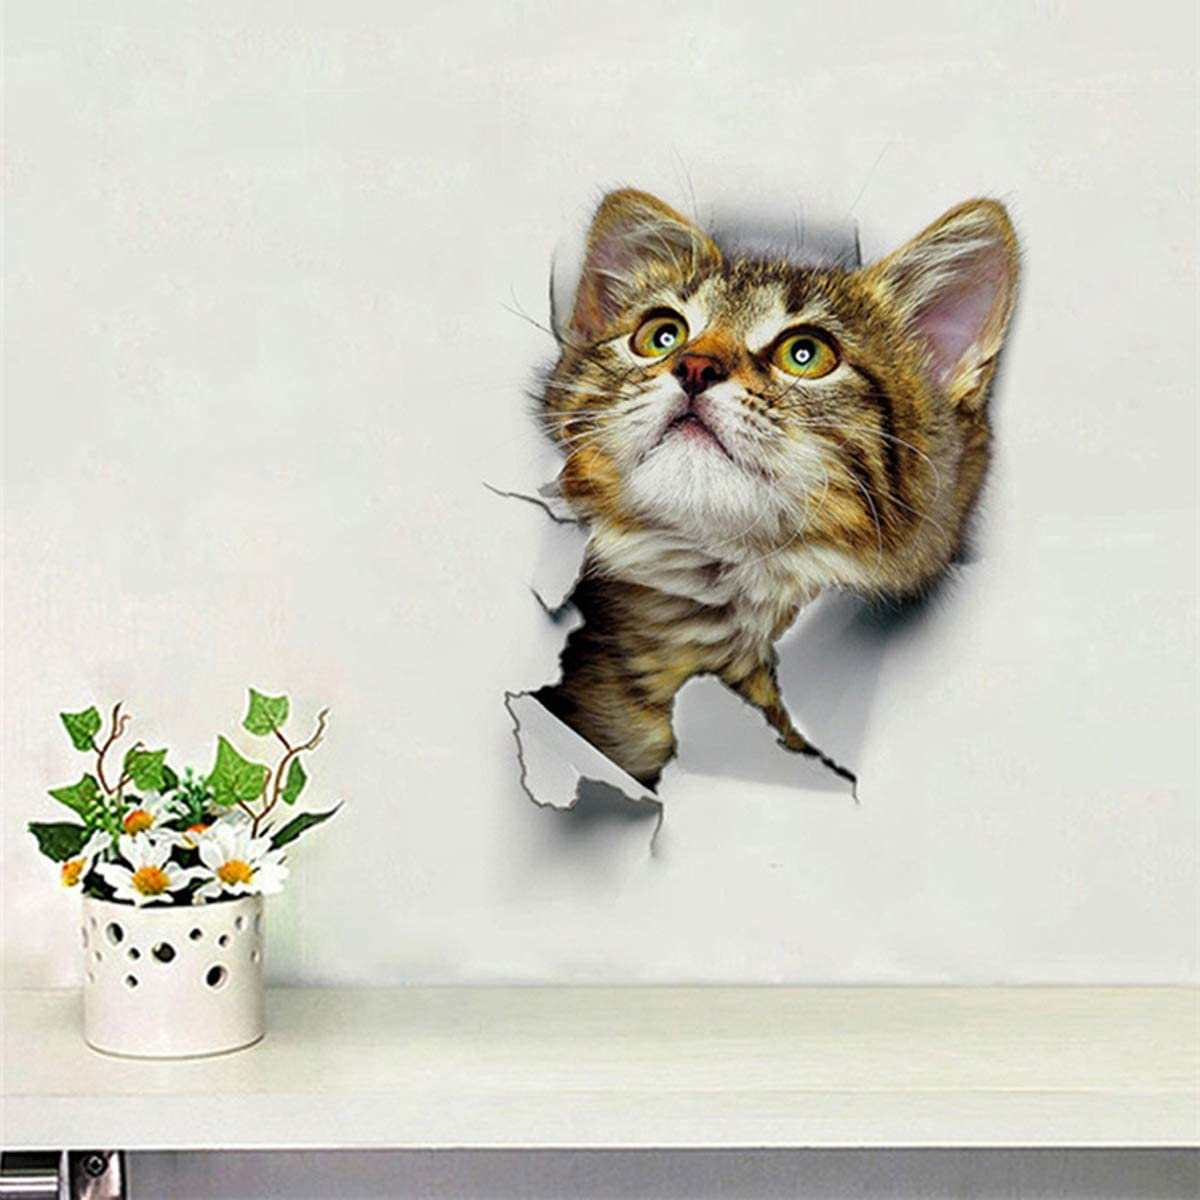 16.5x25cm Hole Pop Out Cat Vivid Smashed Toilet Decal Funny Wall Sticker Bathroom Kitchen Decorative Decals Animals Poster PVC Xingny 3D Sticker 01#